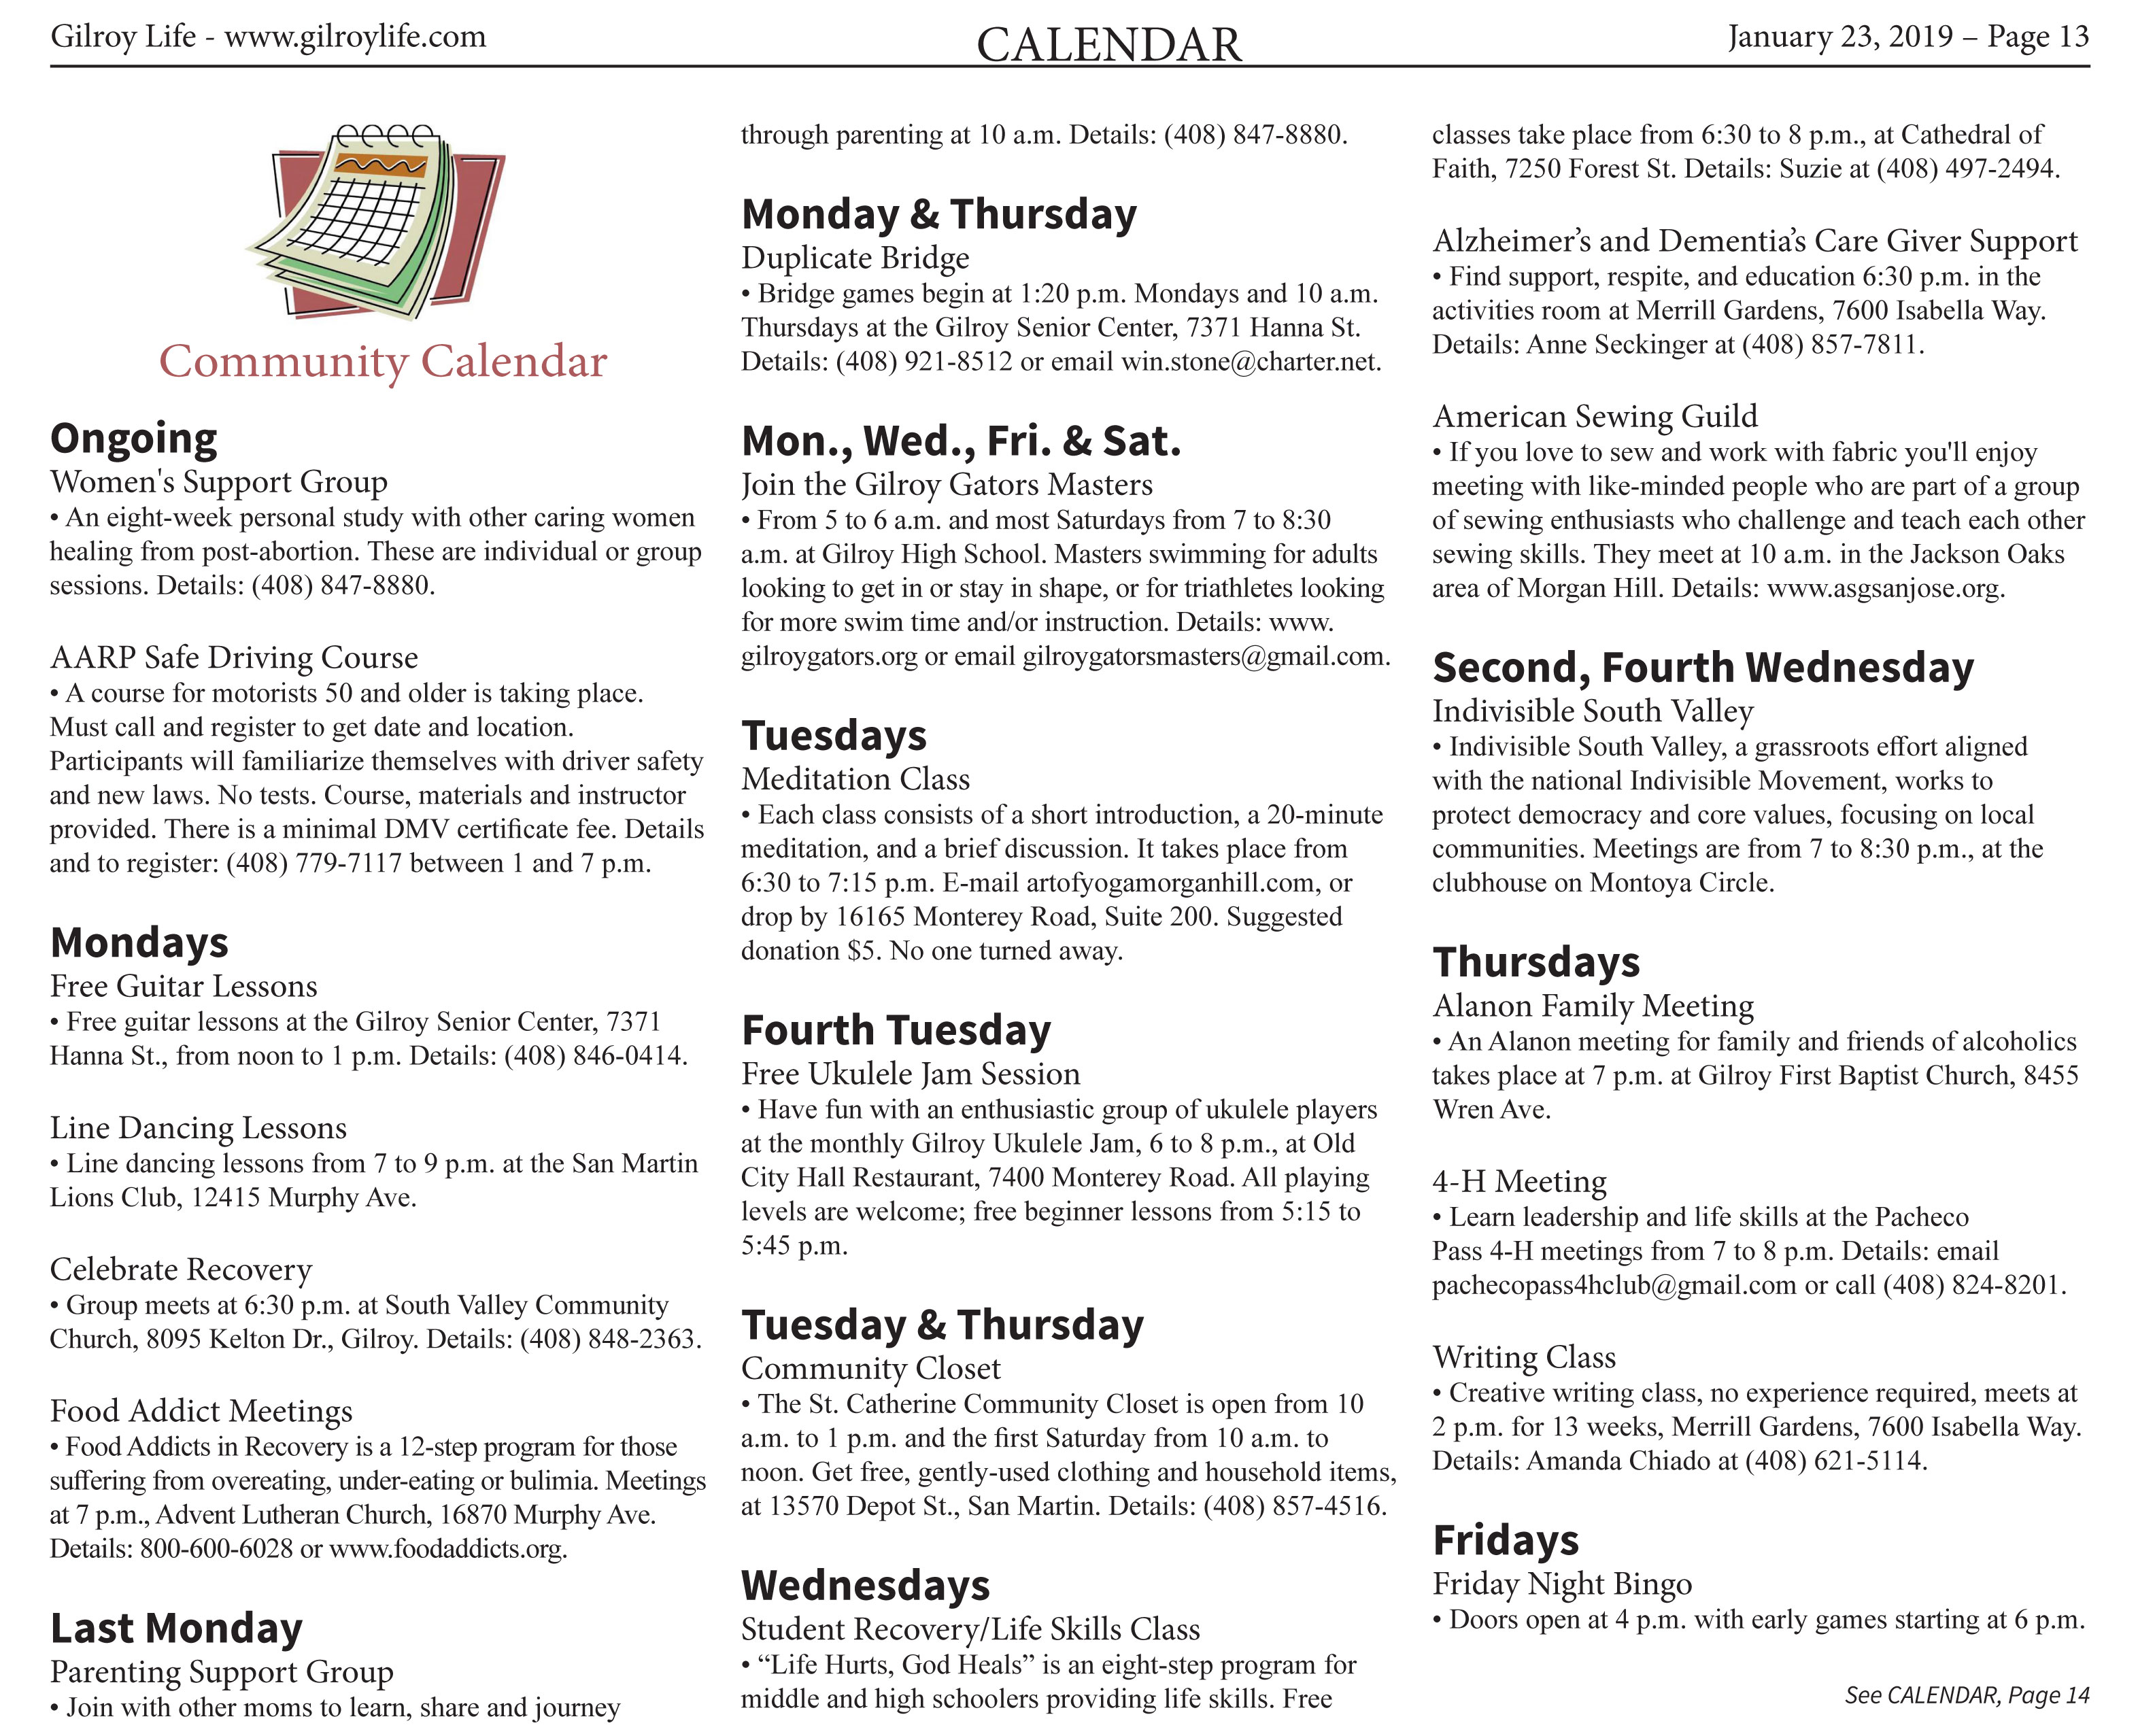 Calendar of Events: Published in the January 23 – February 5